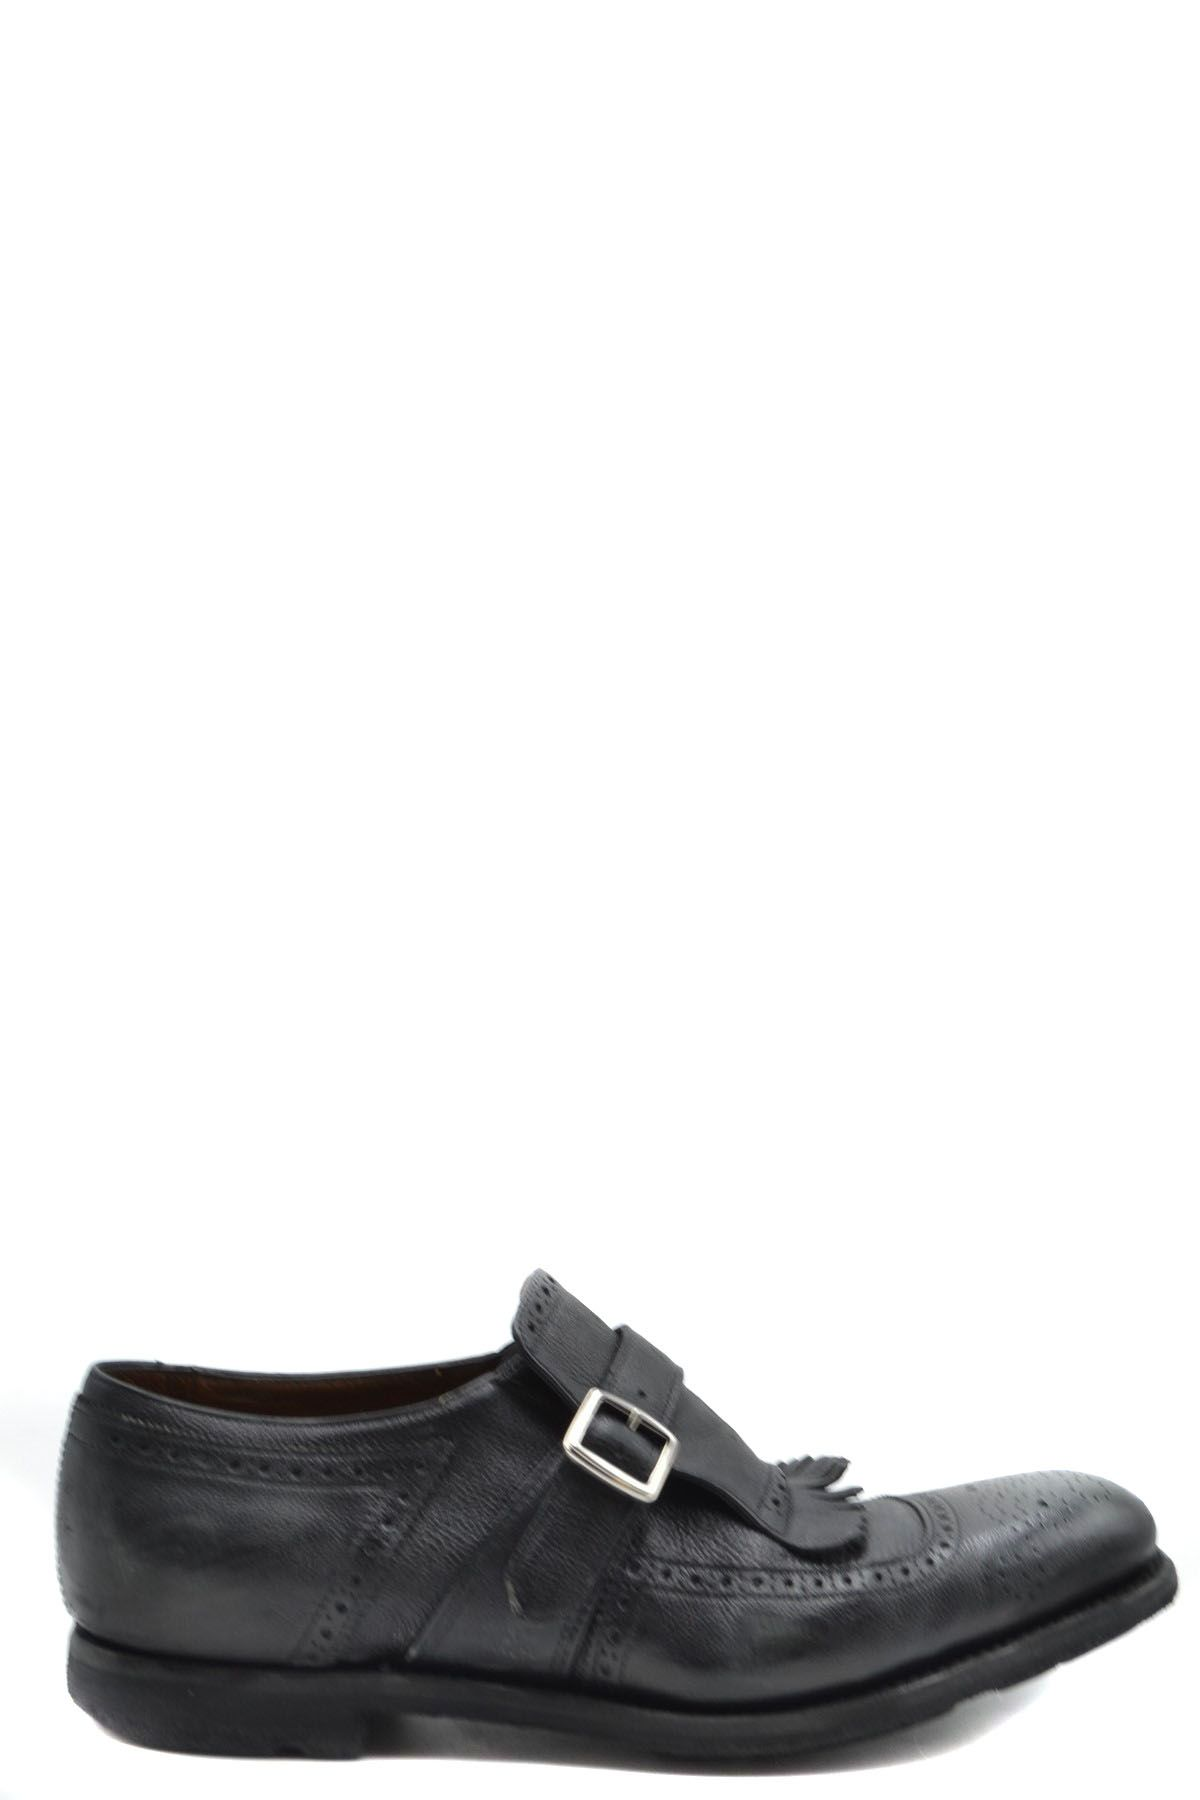 Church's BLACK LEATHER MONK STRAP SHOES